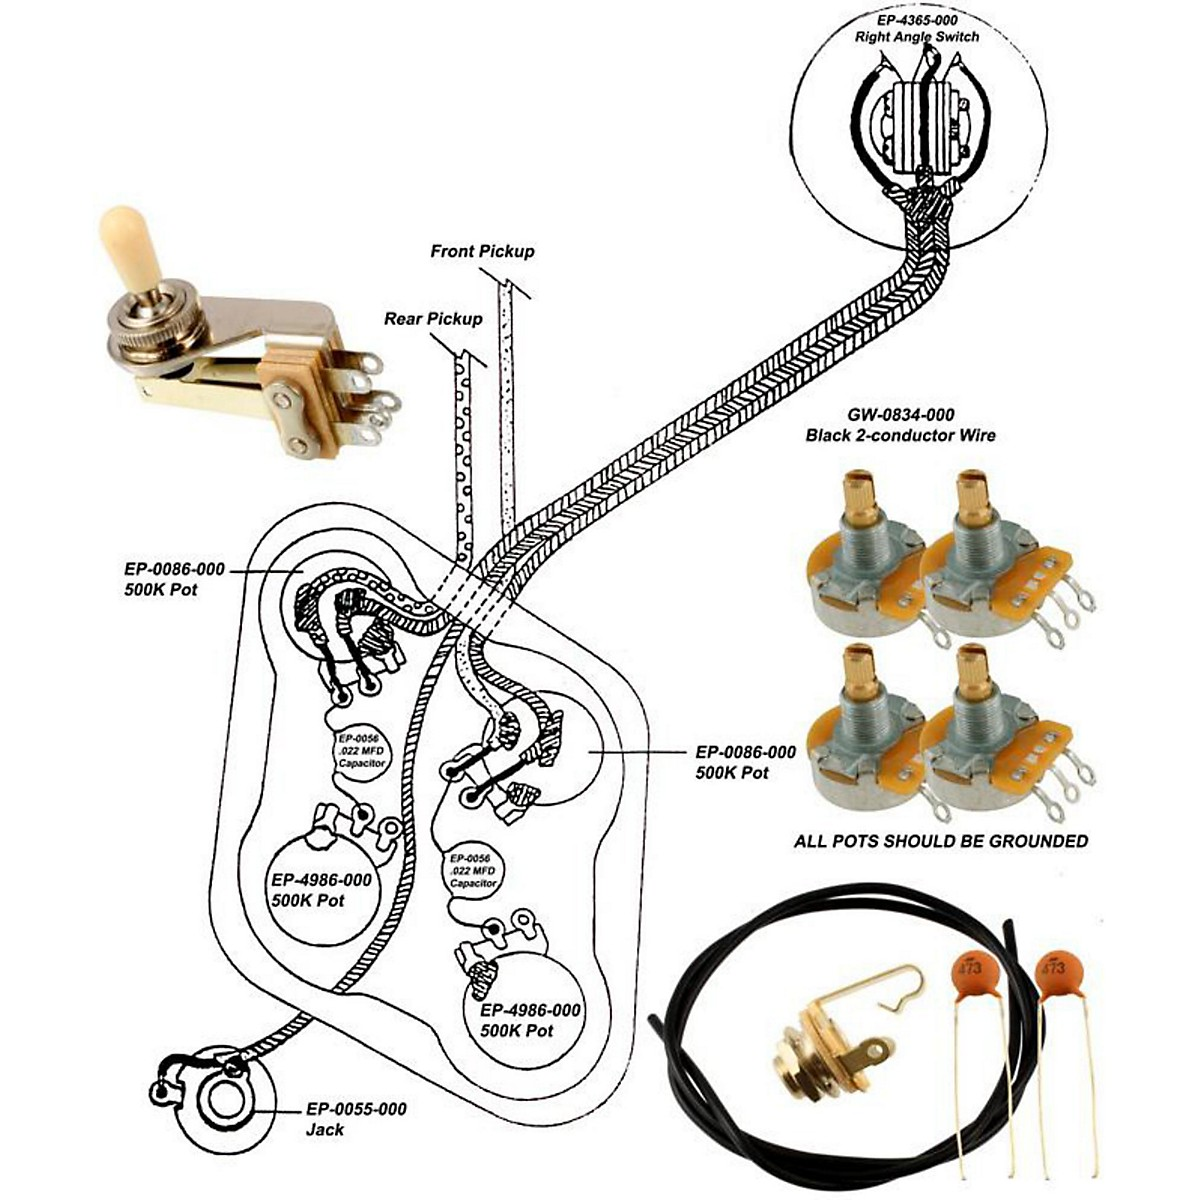 holiday electric guitar wiring diagram allparts ep 4147 000 wiring kit for gibson es 335 guitar center  wiring kit for gibson es 335